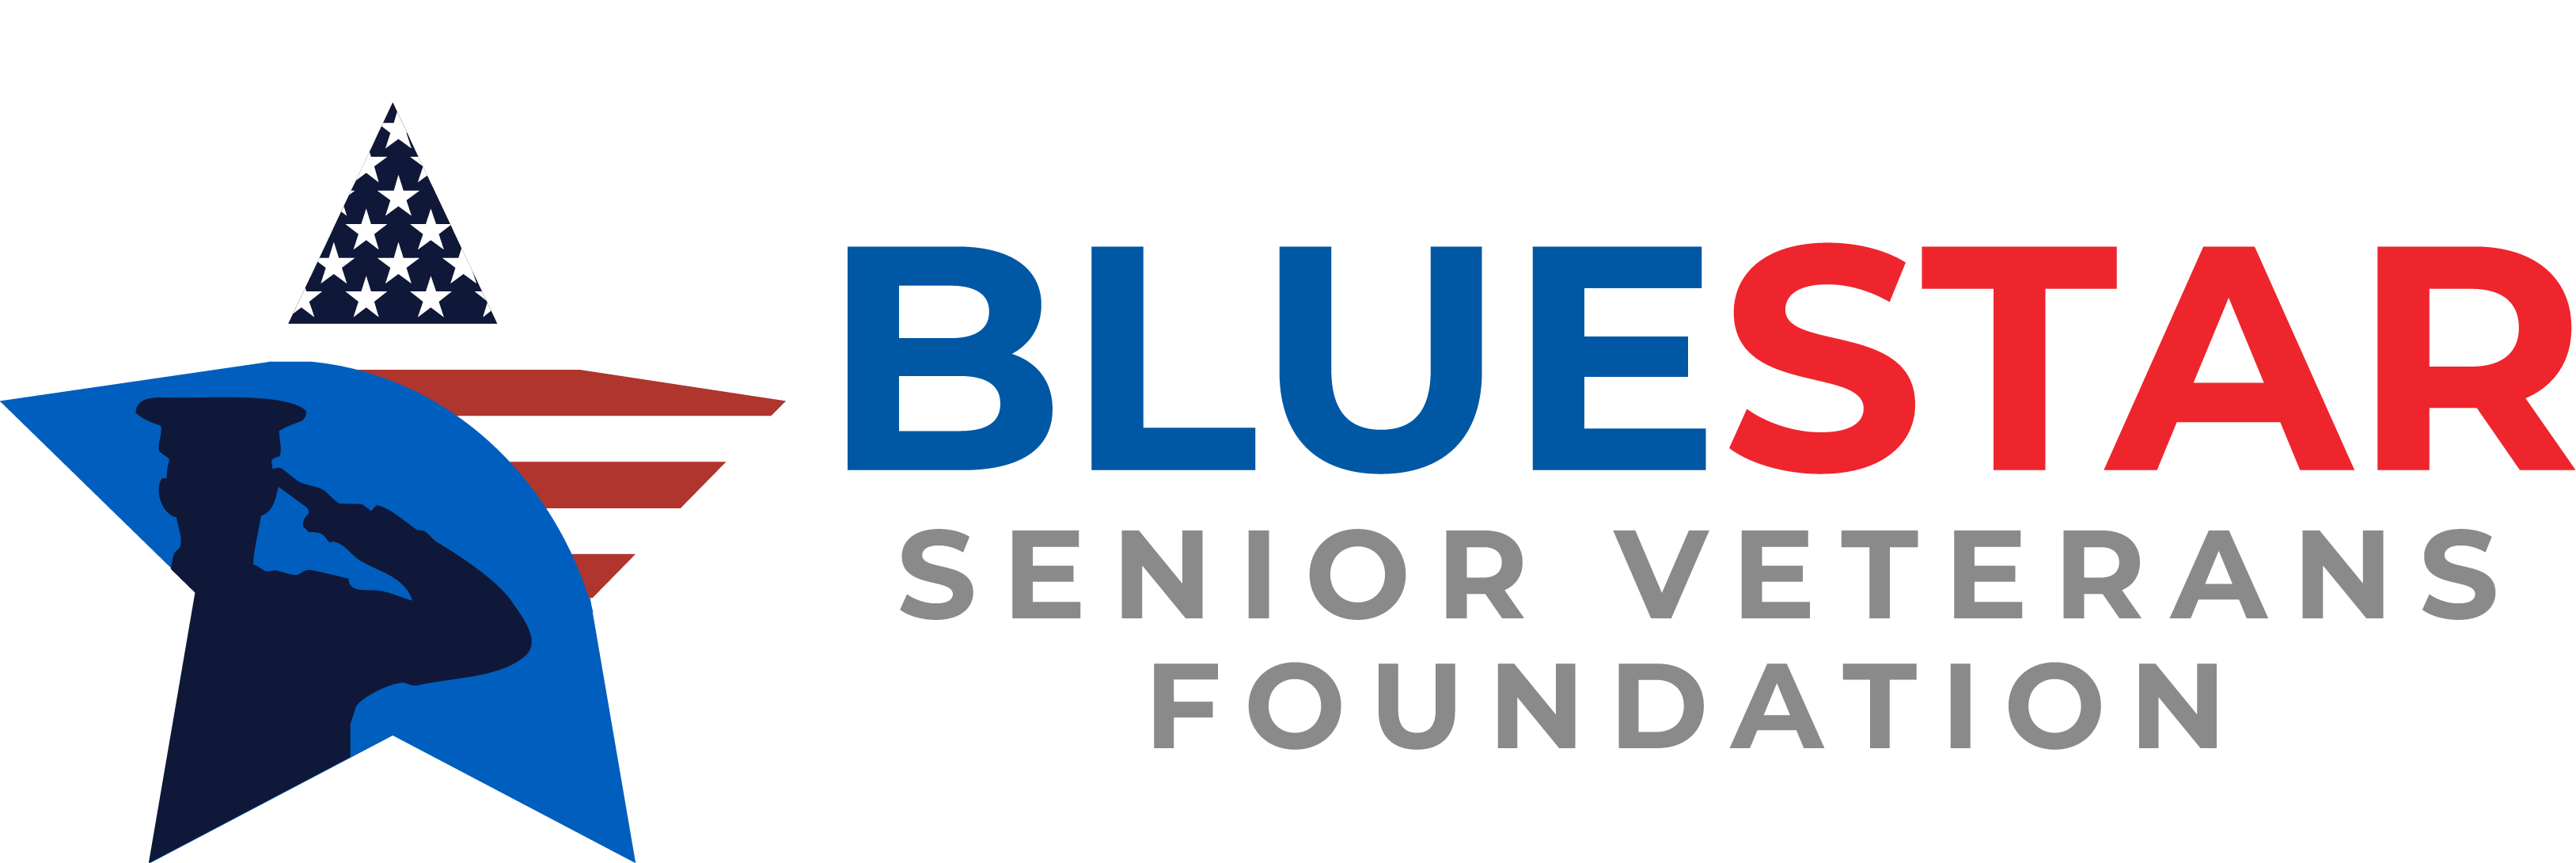 Blue Star Senior Veterans Foundation